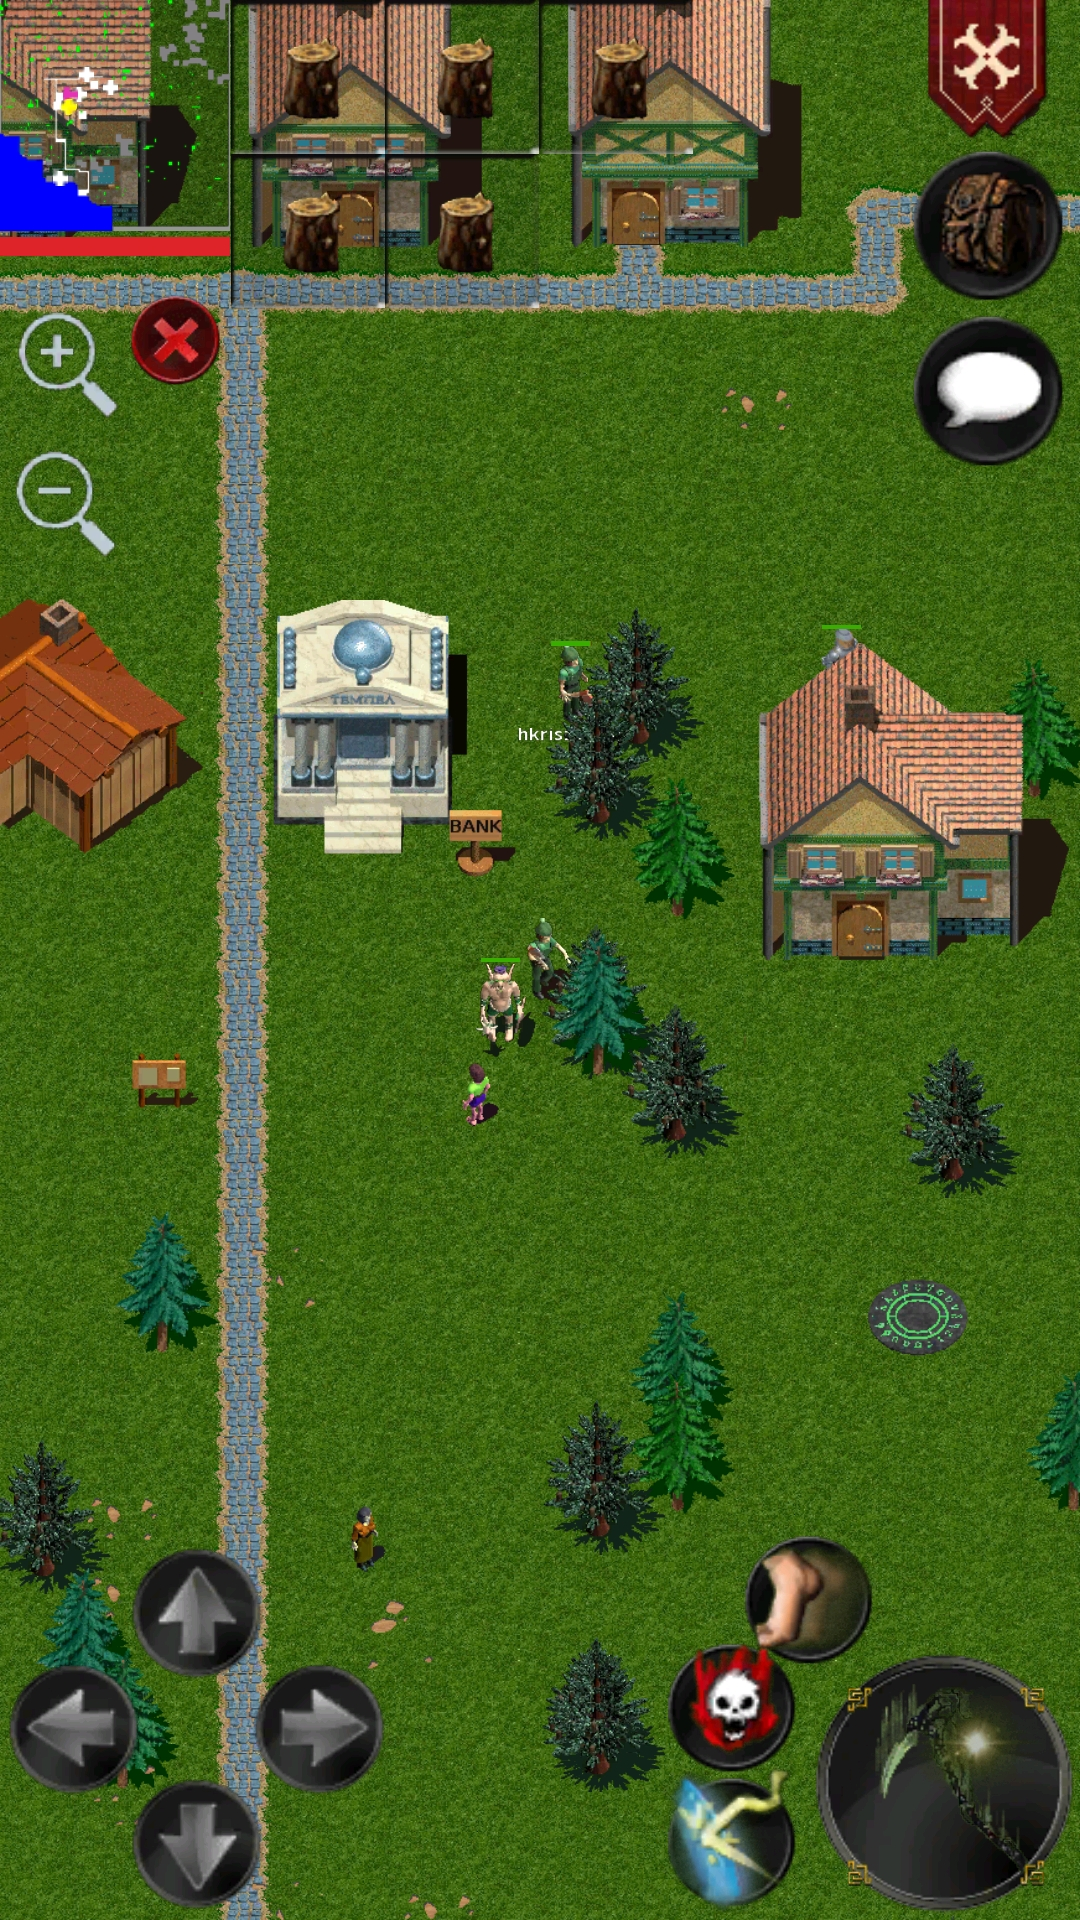 Screenshot_20200114-131106.jpg